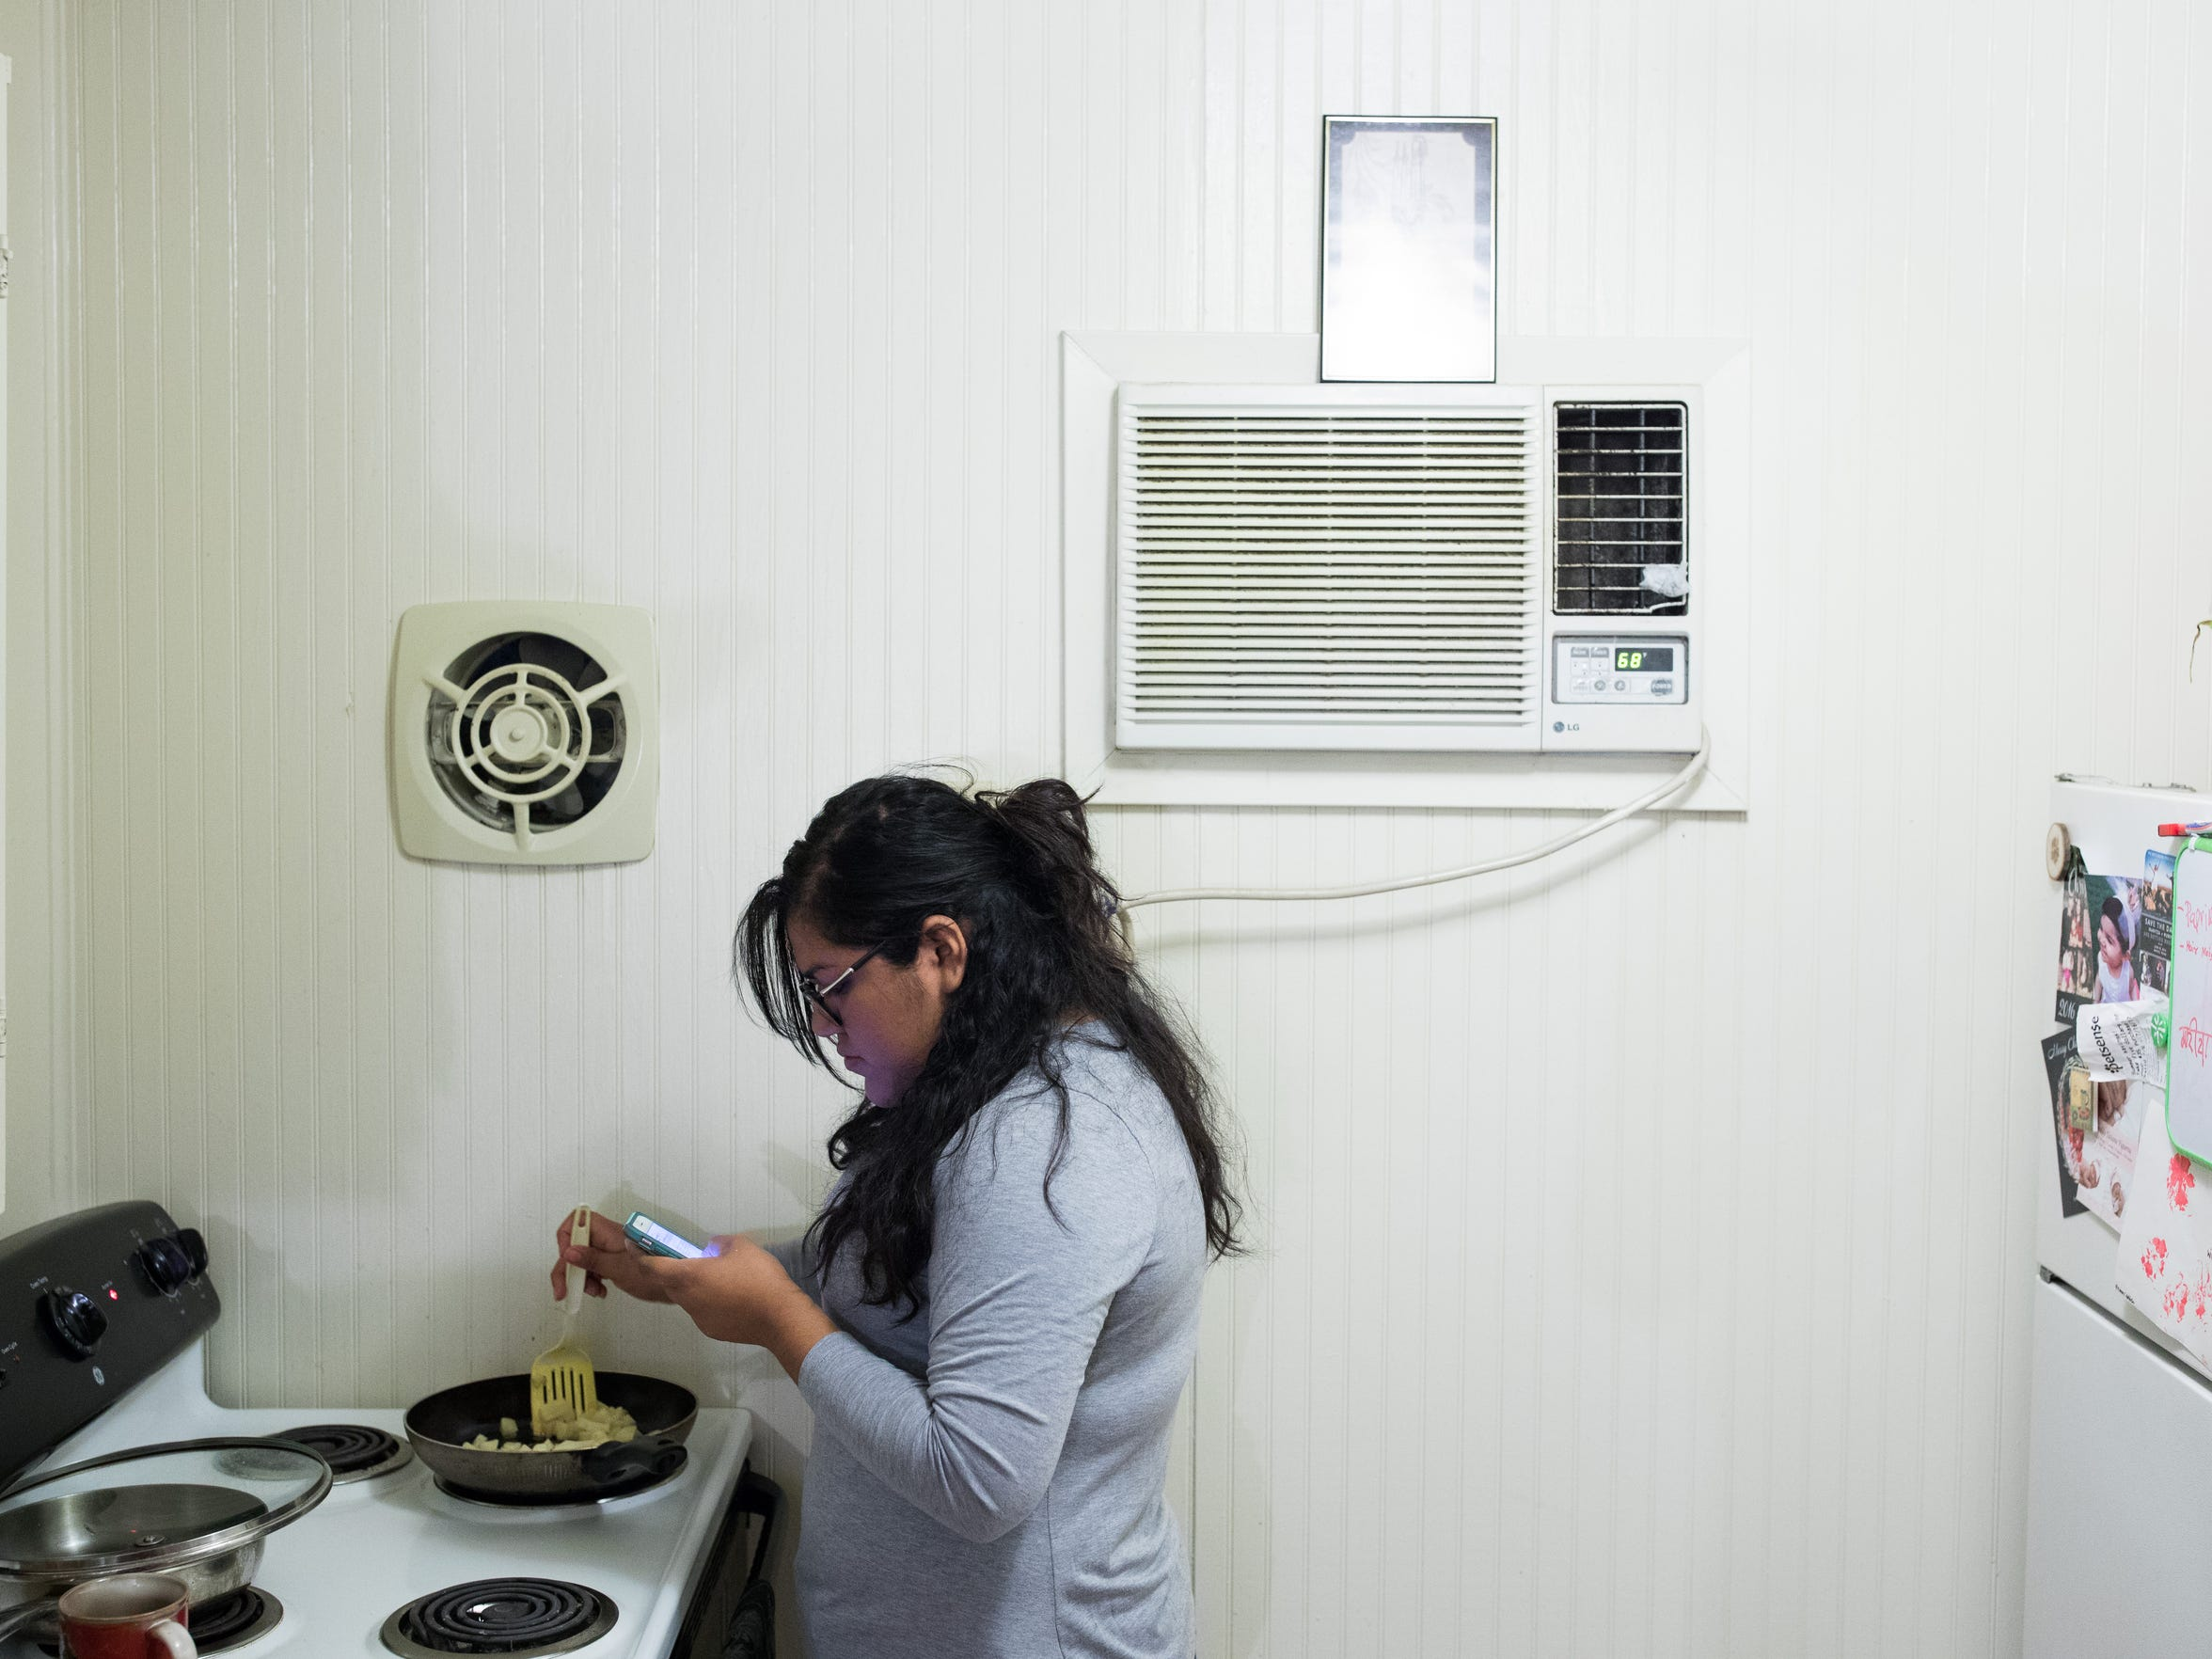 Maria Hernandez cooks breakfast in her apartment in Kingsville, Texas. Hernandez was brought to the U.S from Mexico at the age of 4 by her grandmother to escape an abusive father. She's now a DACA recipient.